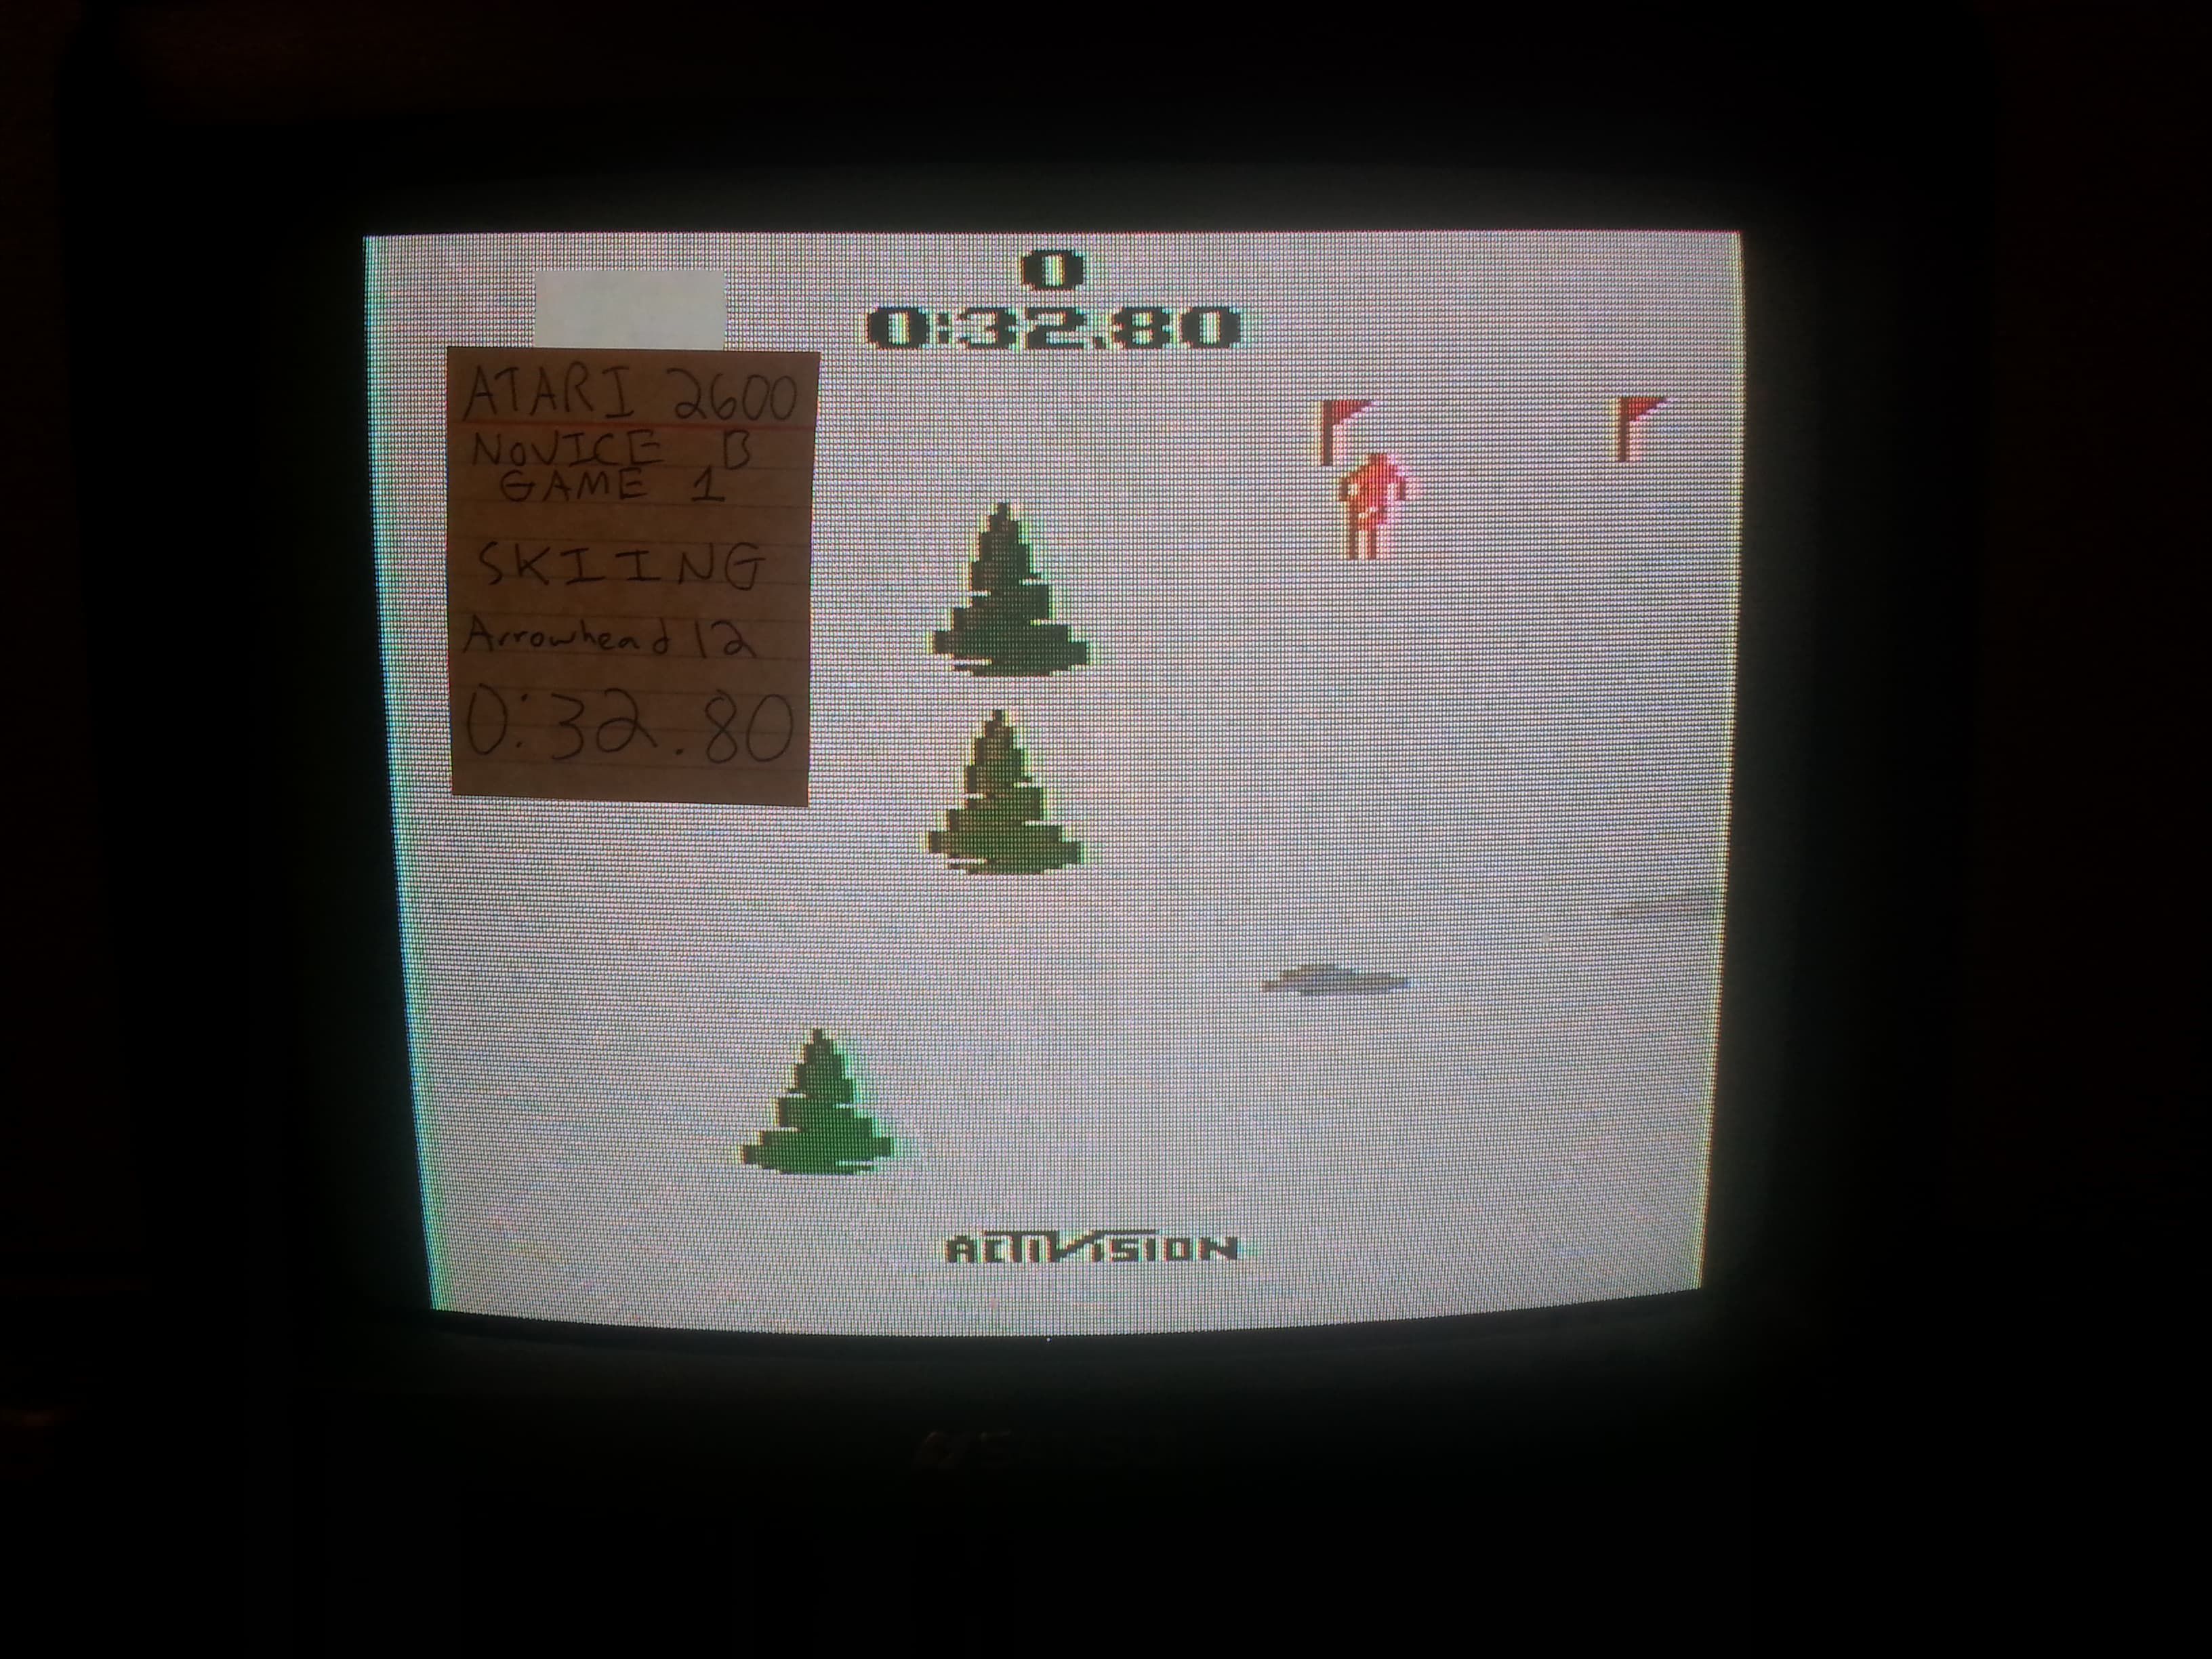 Arrowhead12: Skiing: Game 1 (Atari 2600 Novice/B) 0:00:32.8 points on 2018-09-30 02:41:15